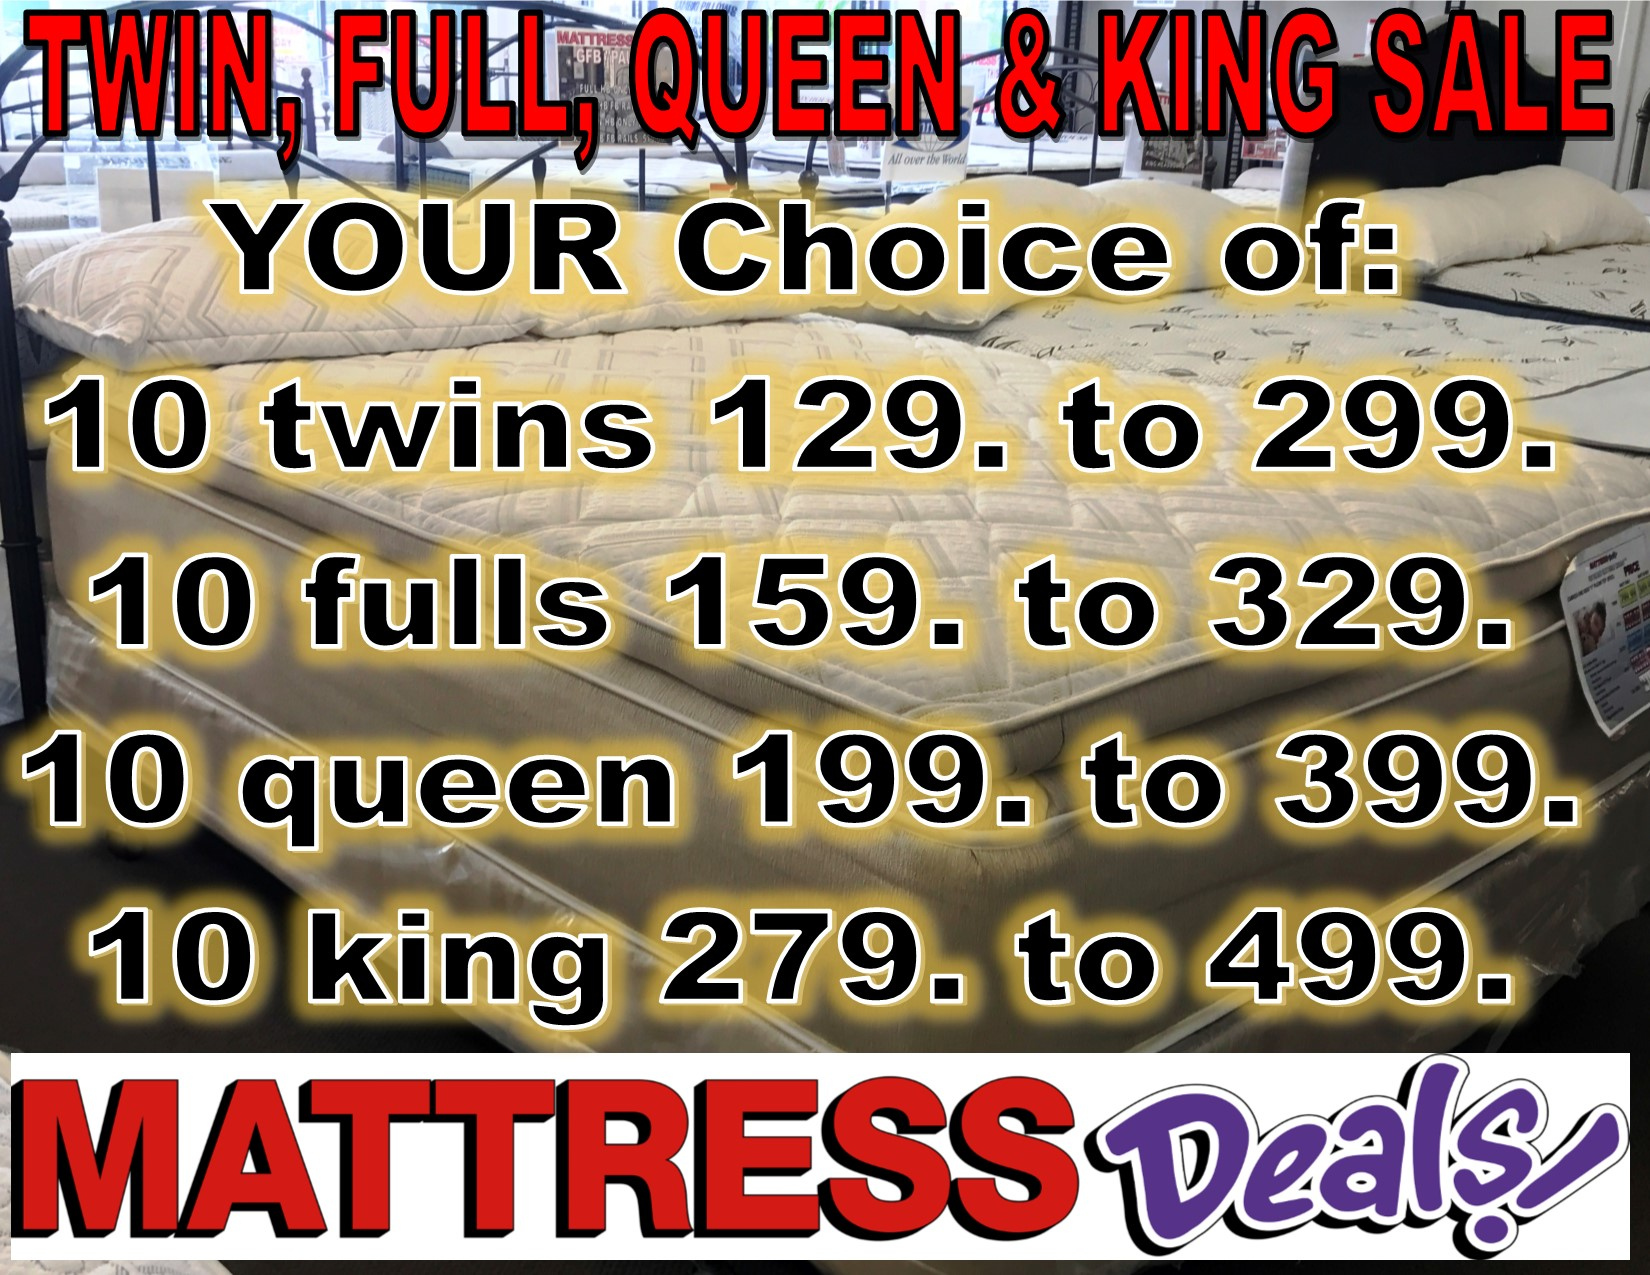 Mattress Deals image 93